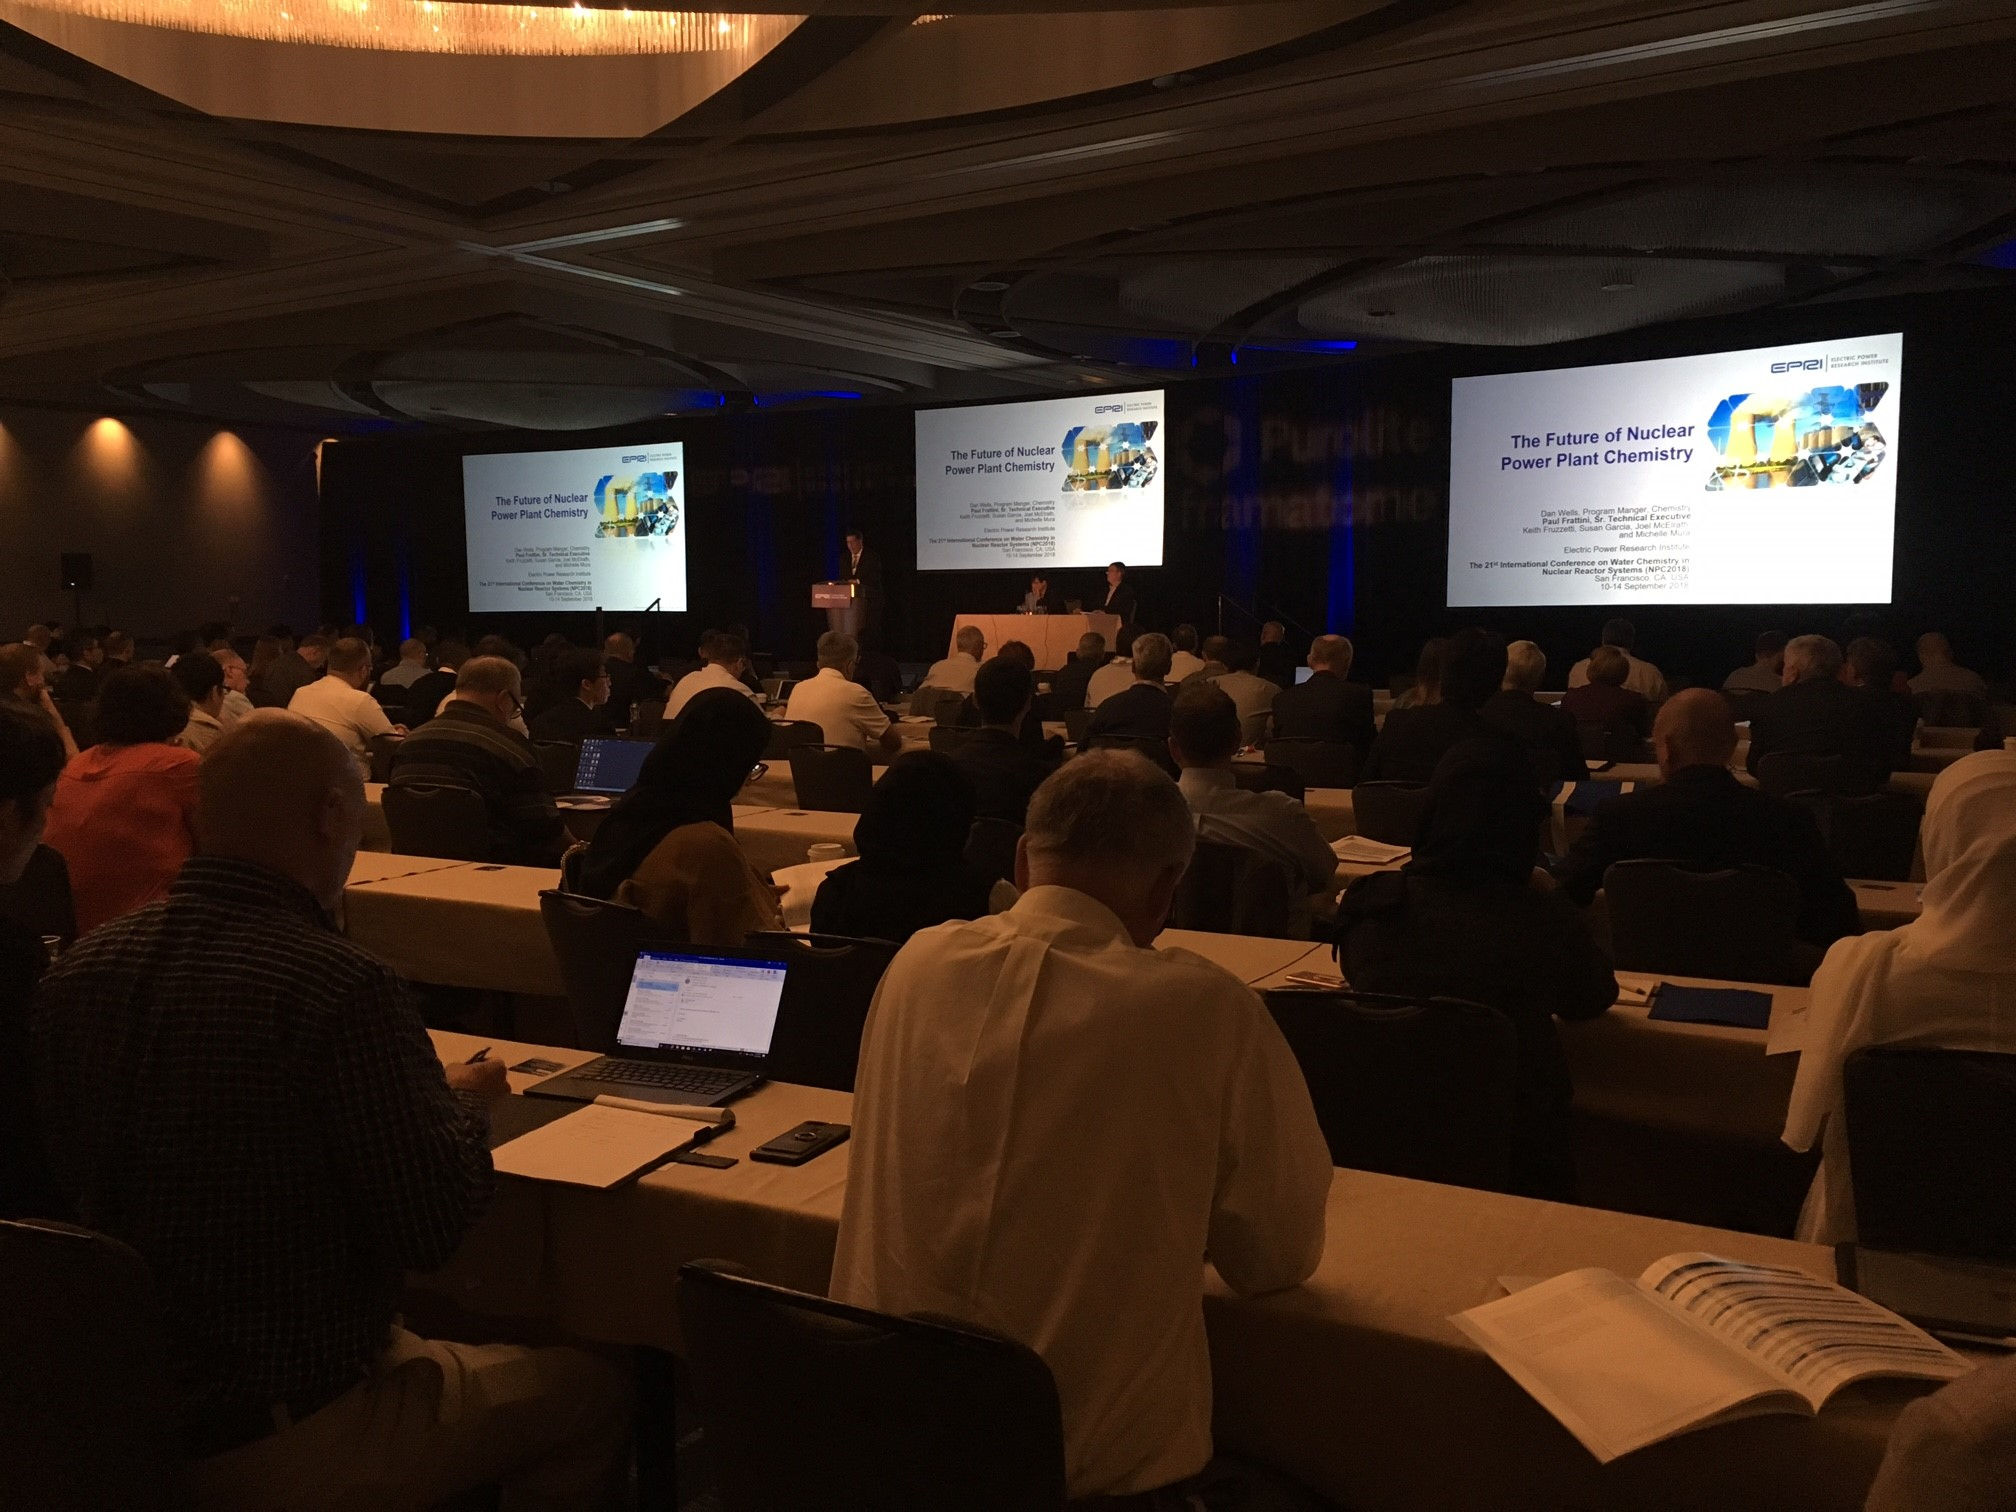 EPRI Nuclear Chemistry Conference in San Francisco